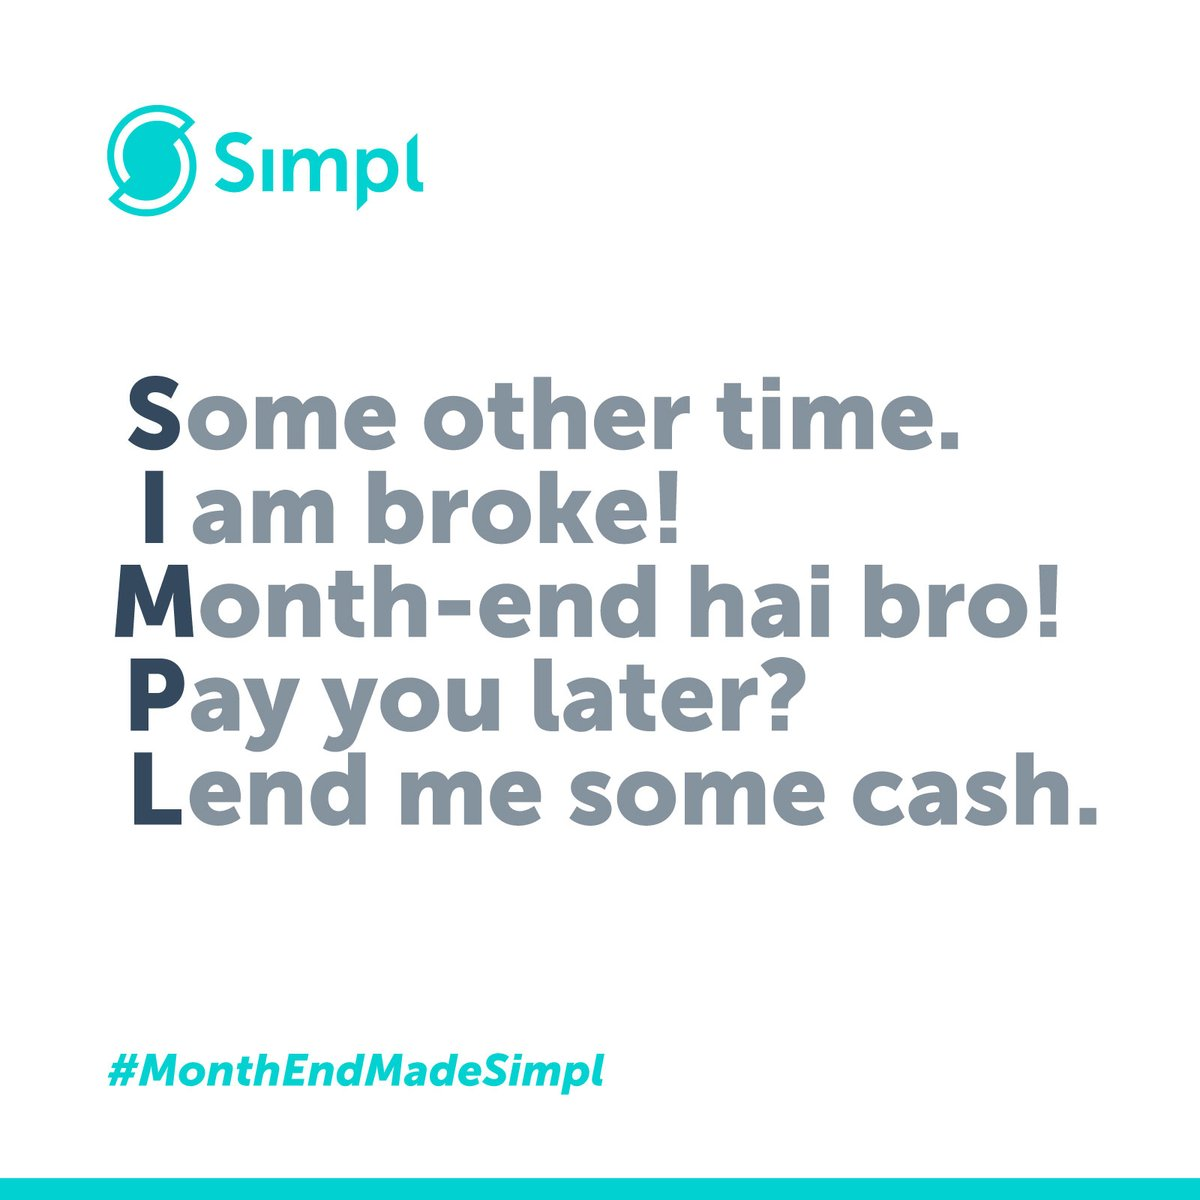 Month-end cash crunch? We have you covered! Use Simpl on different merchant apps now and pay later. Know more - https://www.getsimpl.com  #BuyNow #PayLater #PaymentsMadeSimpl #HassleFreePayments #GetSimpl #DigitalPayments #Fintech #EasyPayments #GoCashless #Finance #TechCompany pic.twitter.com/rMEa8yAgsF